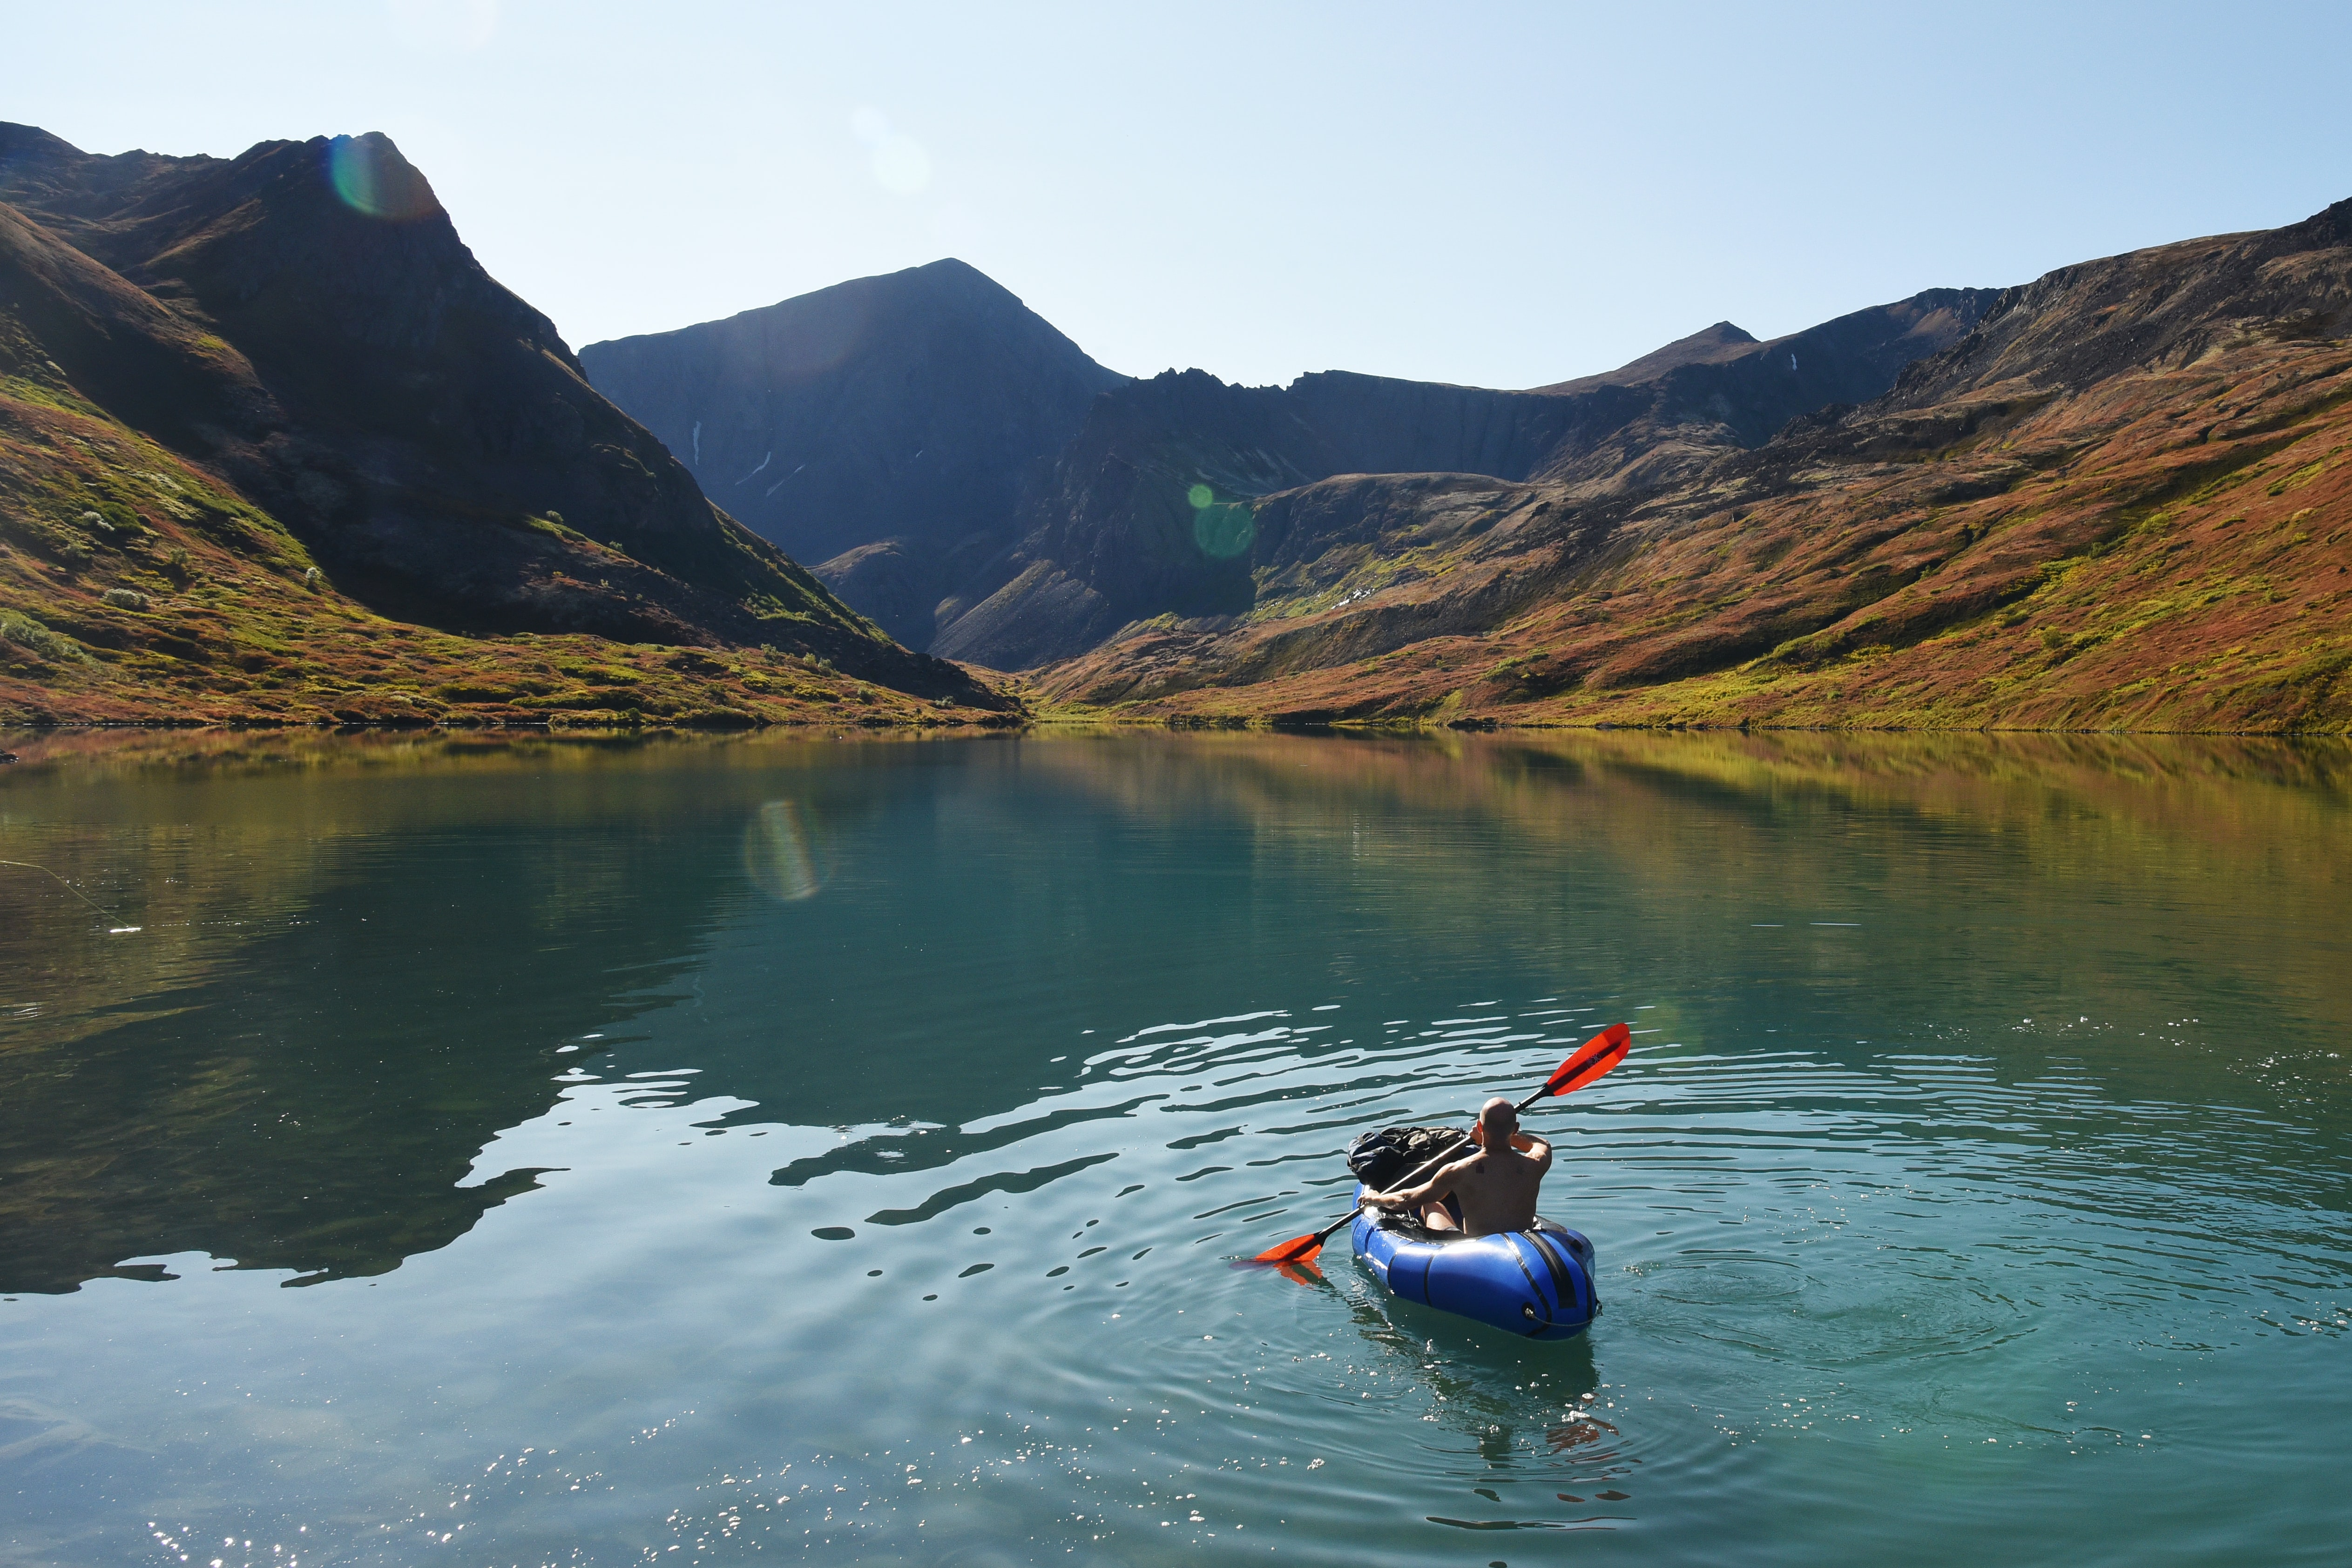 kayaker paddling on a lake in chugach state park in alaska